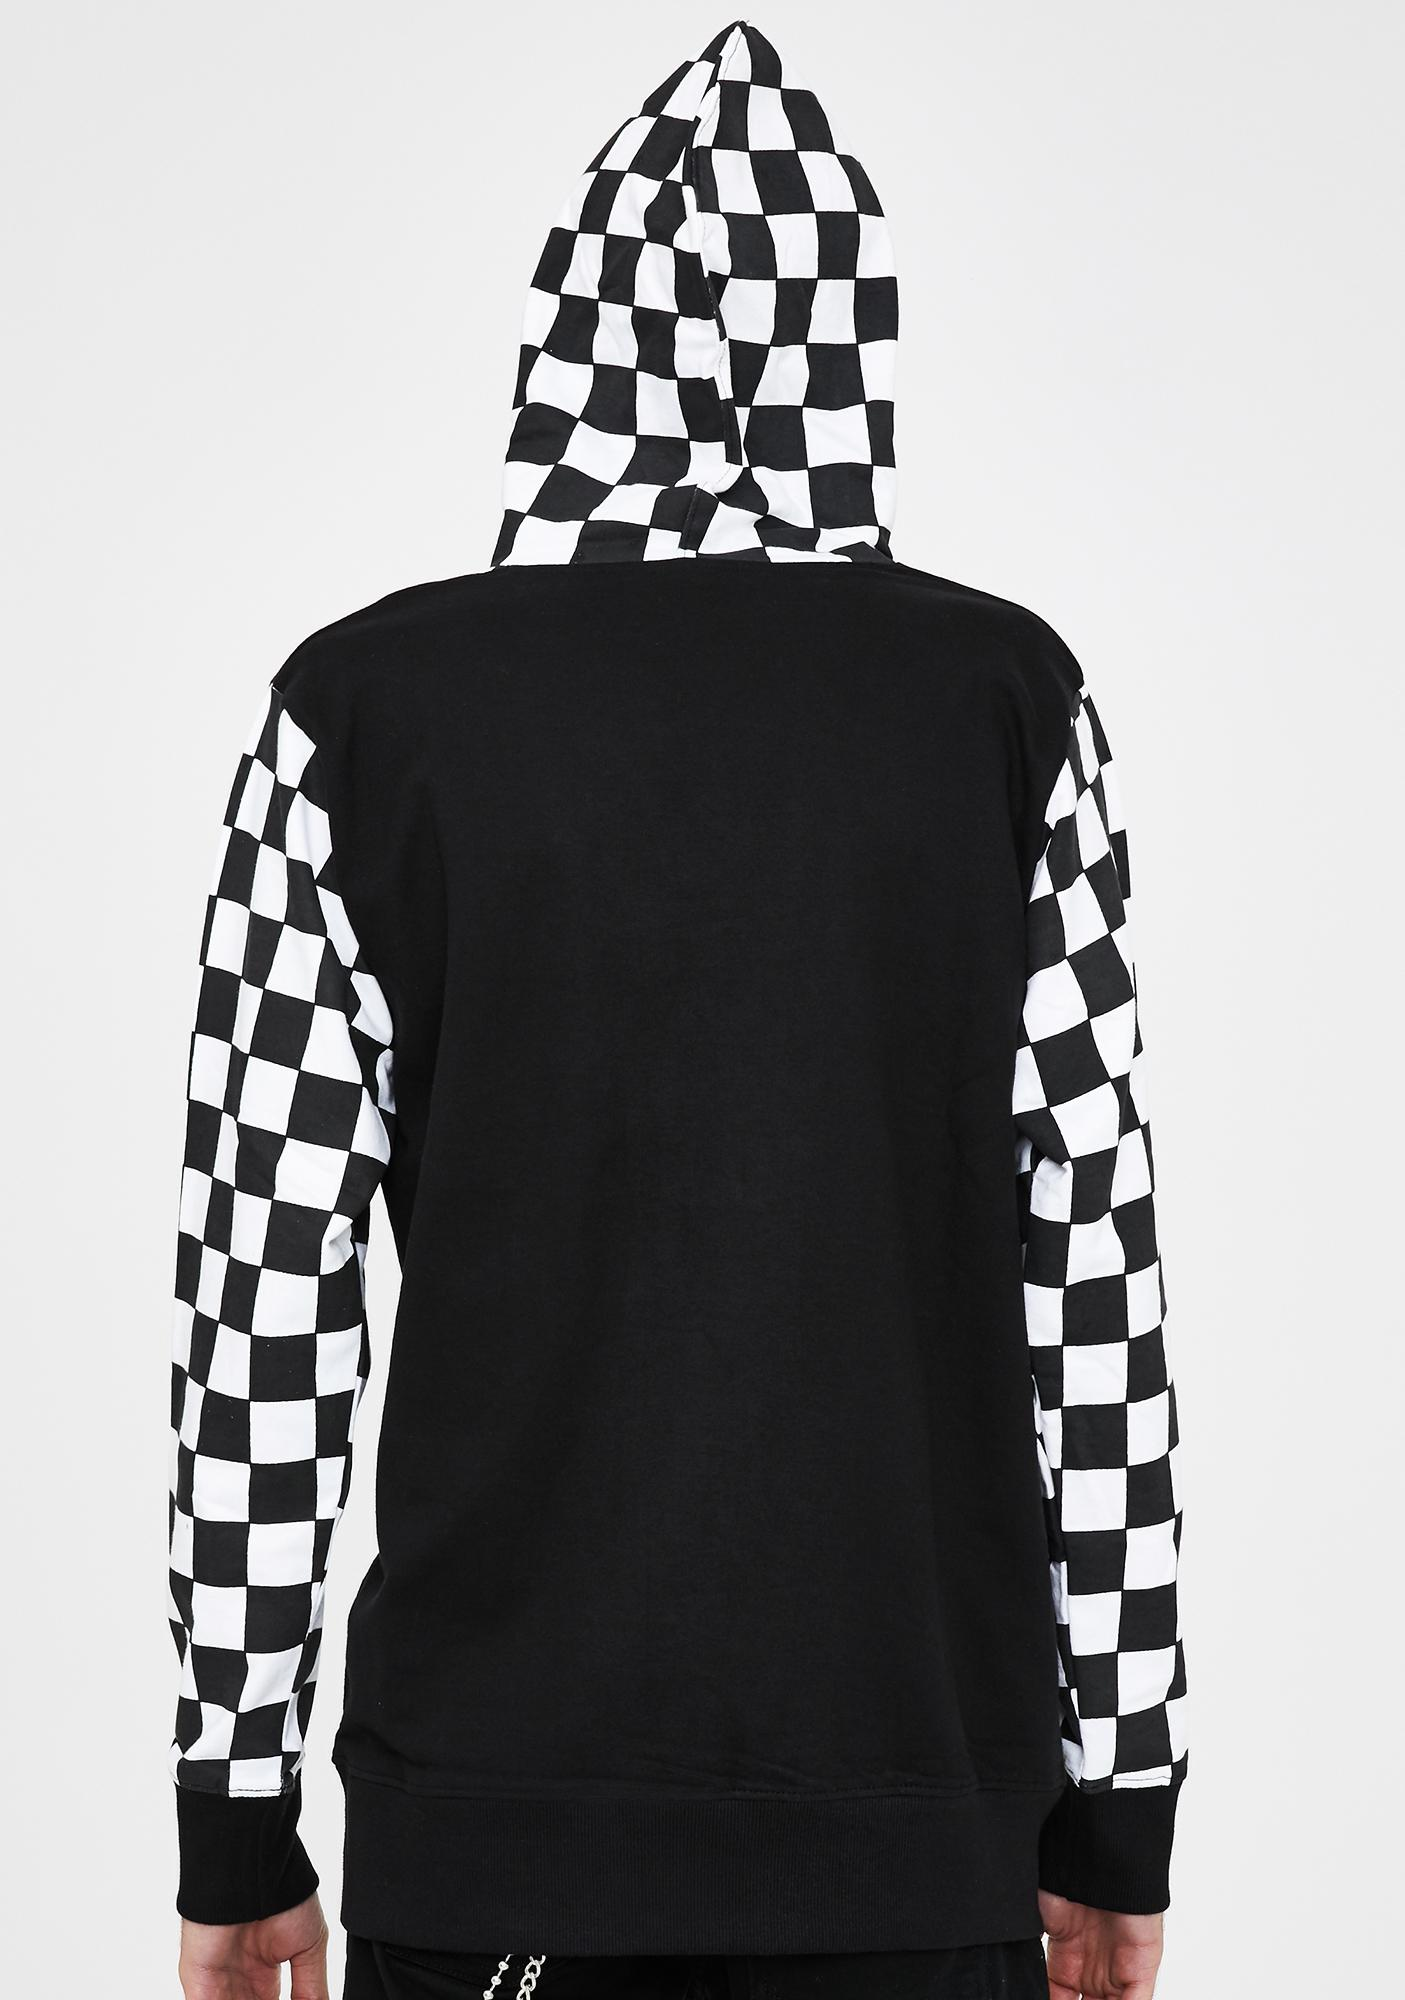 BROKEN PROMISES CO Problems Checkered Hoodie